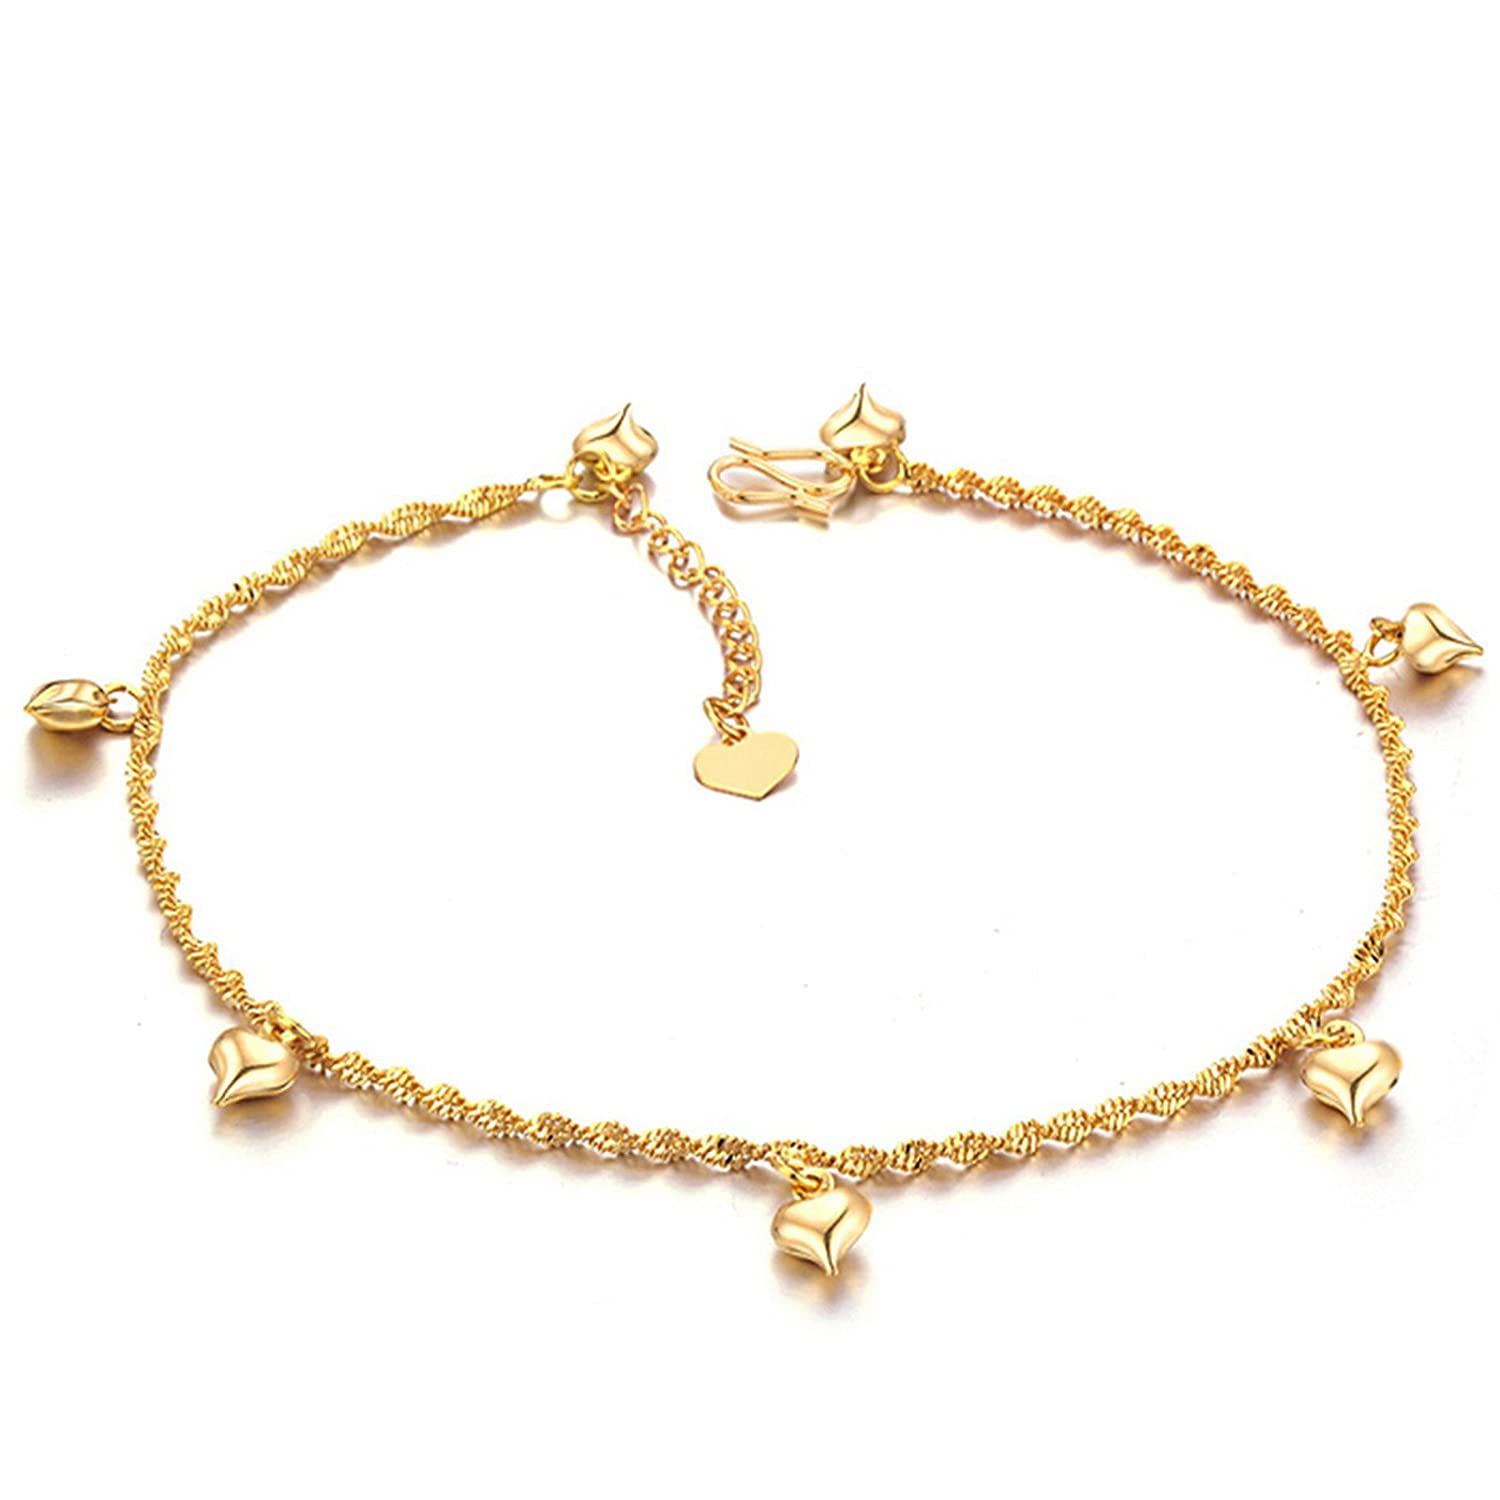 Marrymi Buy one get one(Check Features&Details) Women Anklet Bracelet Chain 18k Gold Plated Copper Adjustable Bells Pendant